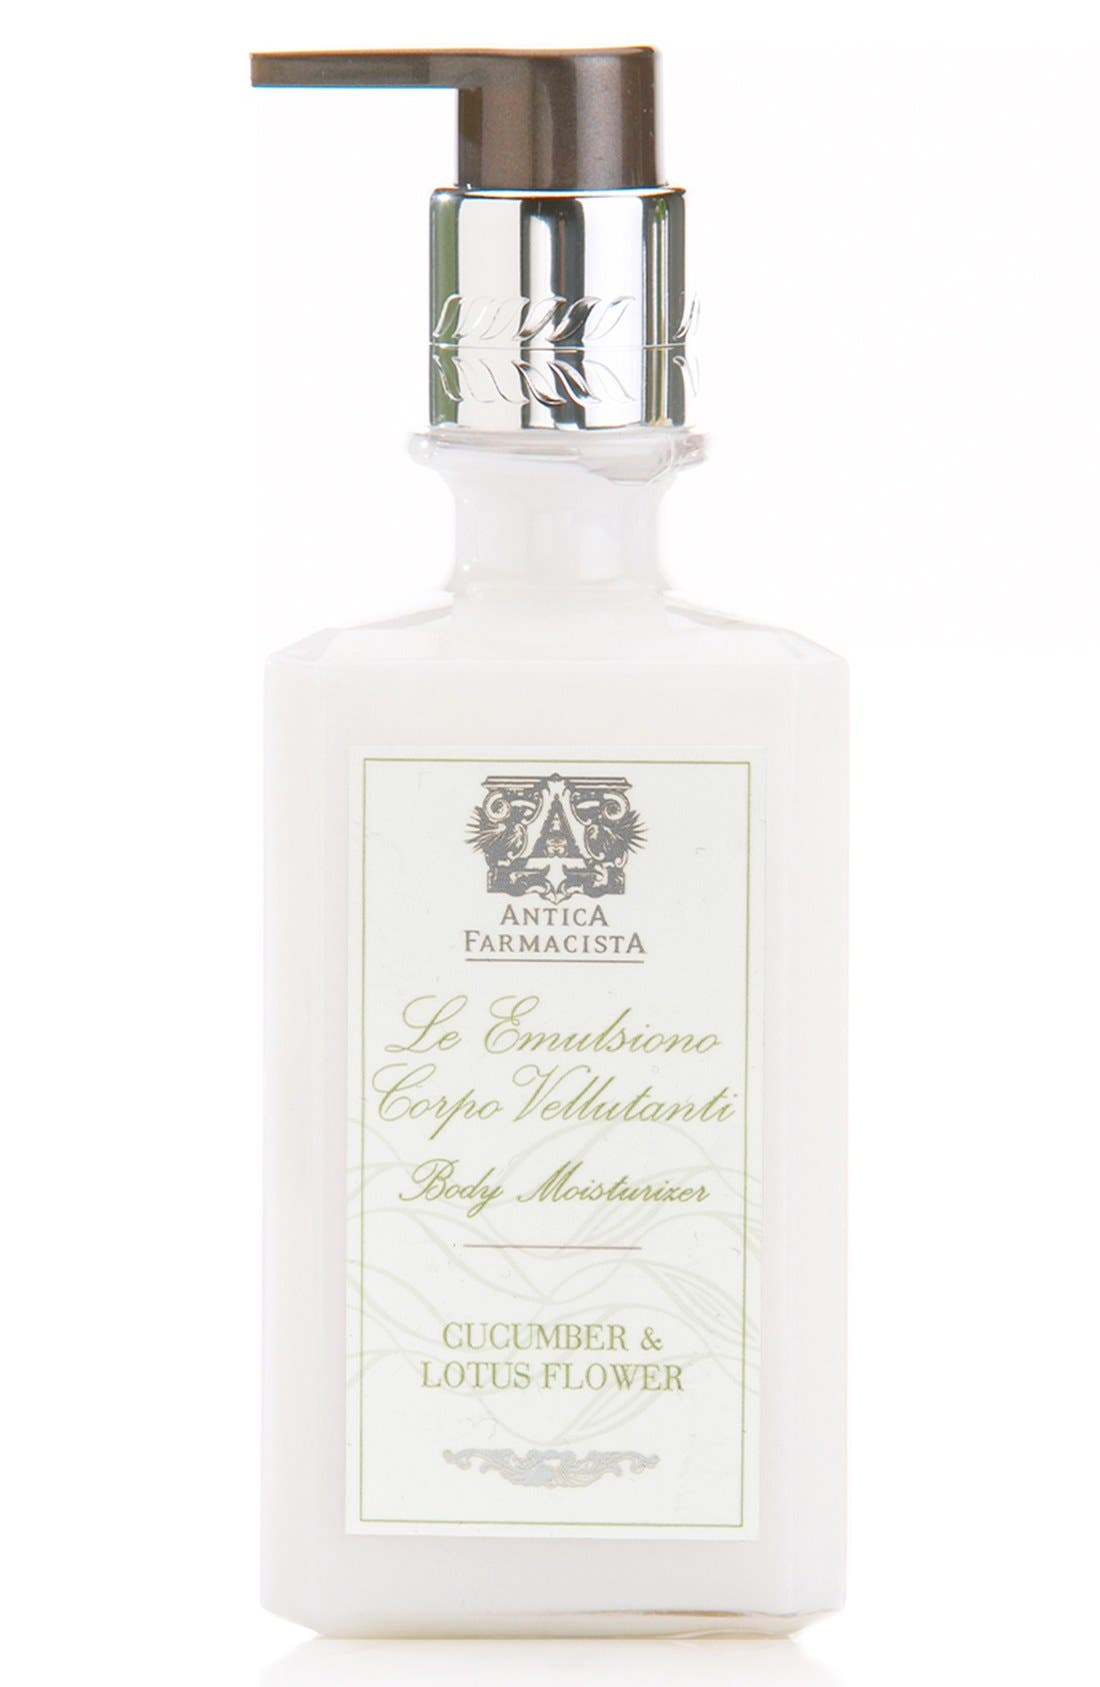 Antica Farmacista 'Cucumber & Lotus Flower' Body Moisturizer